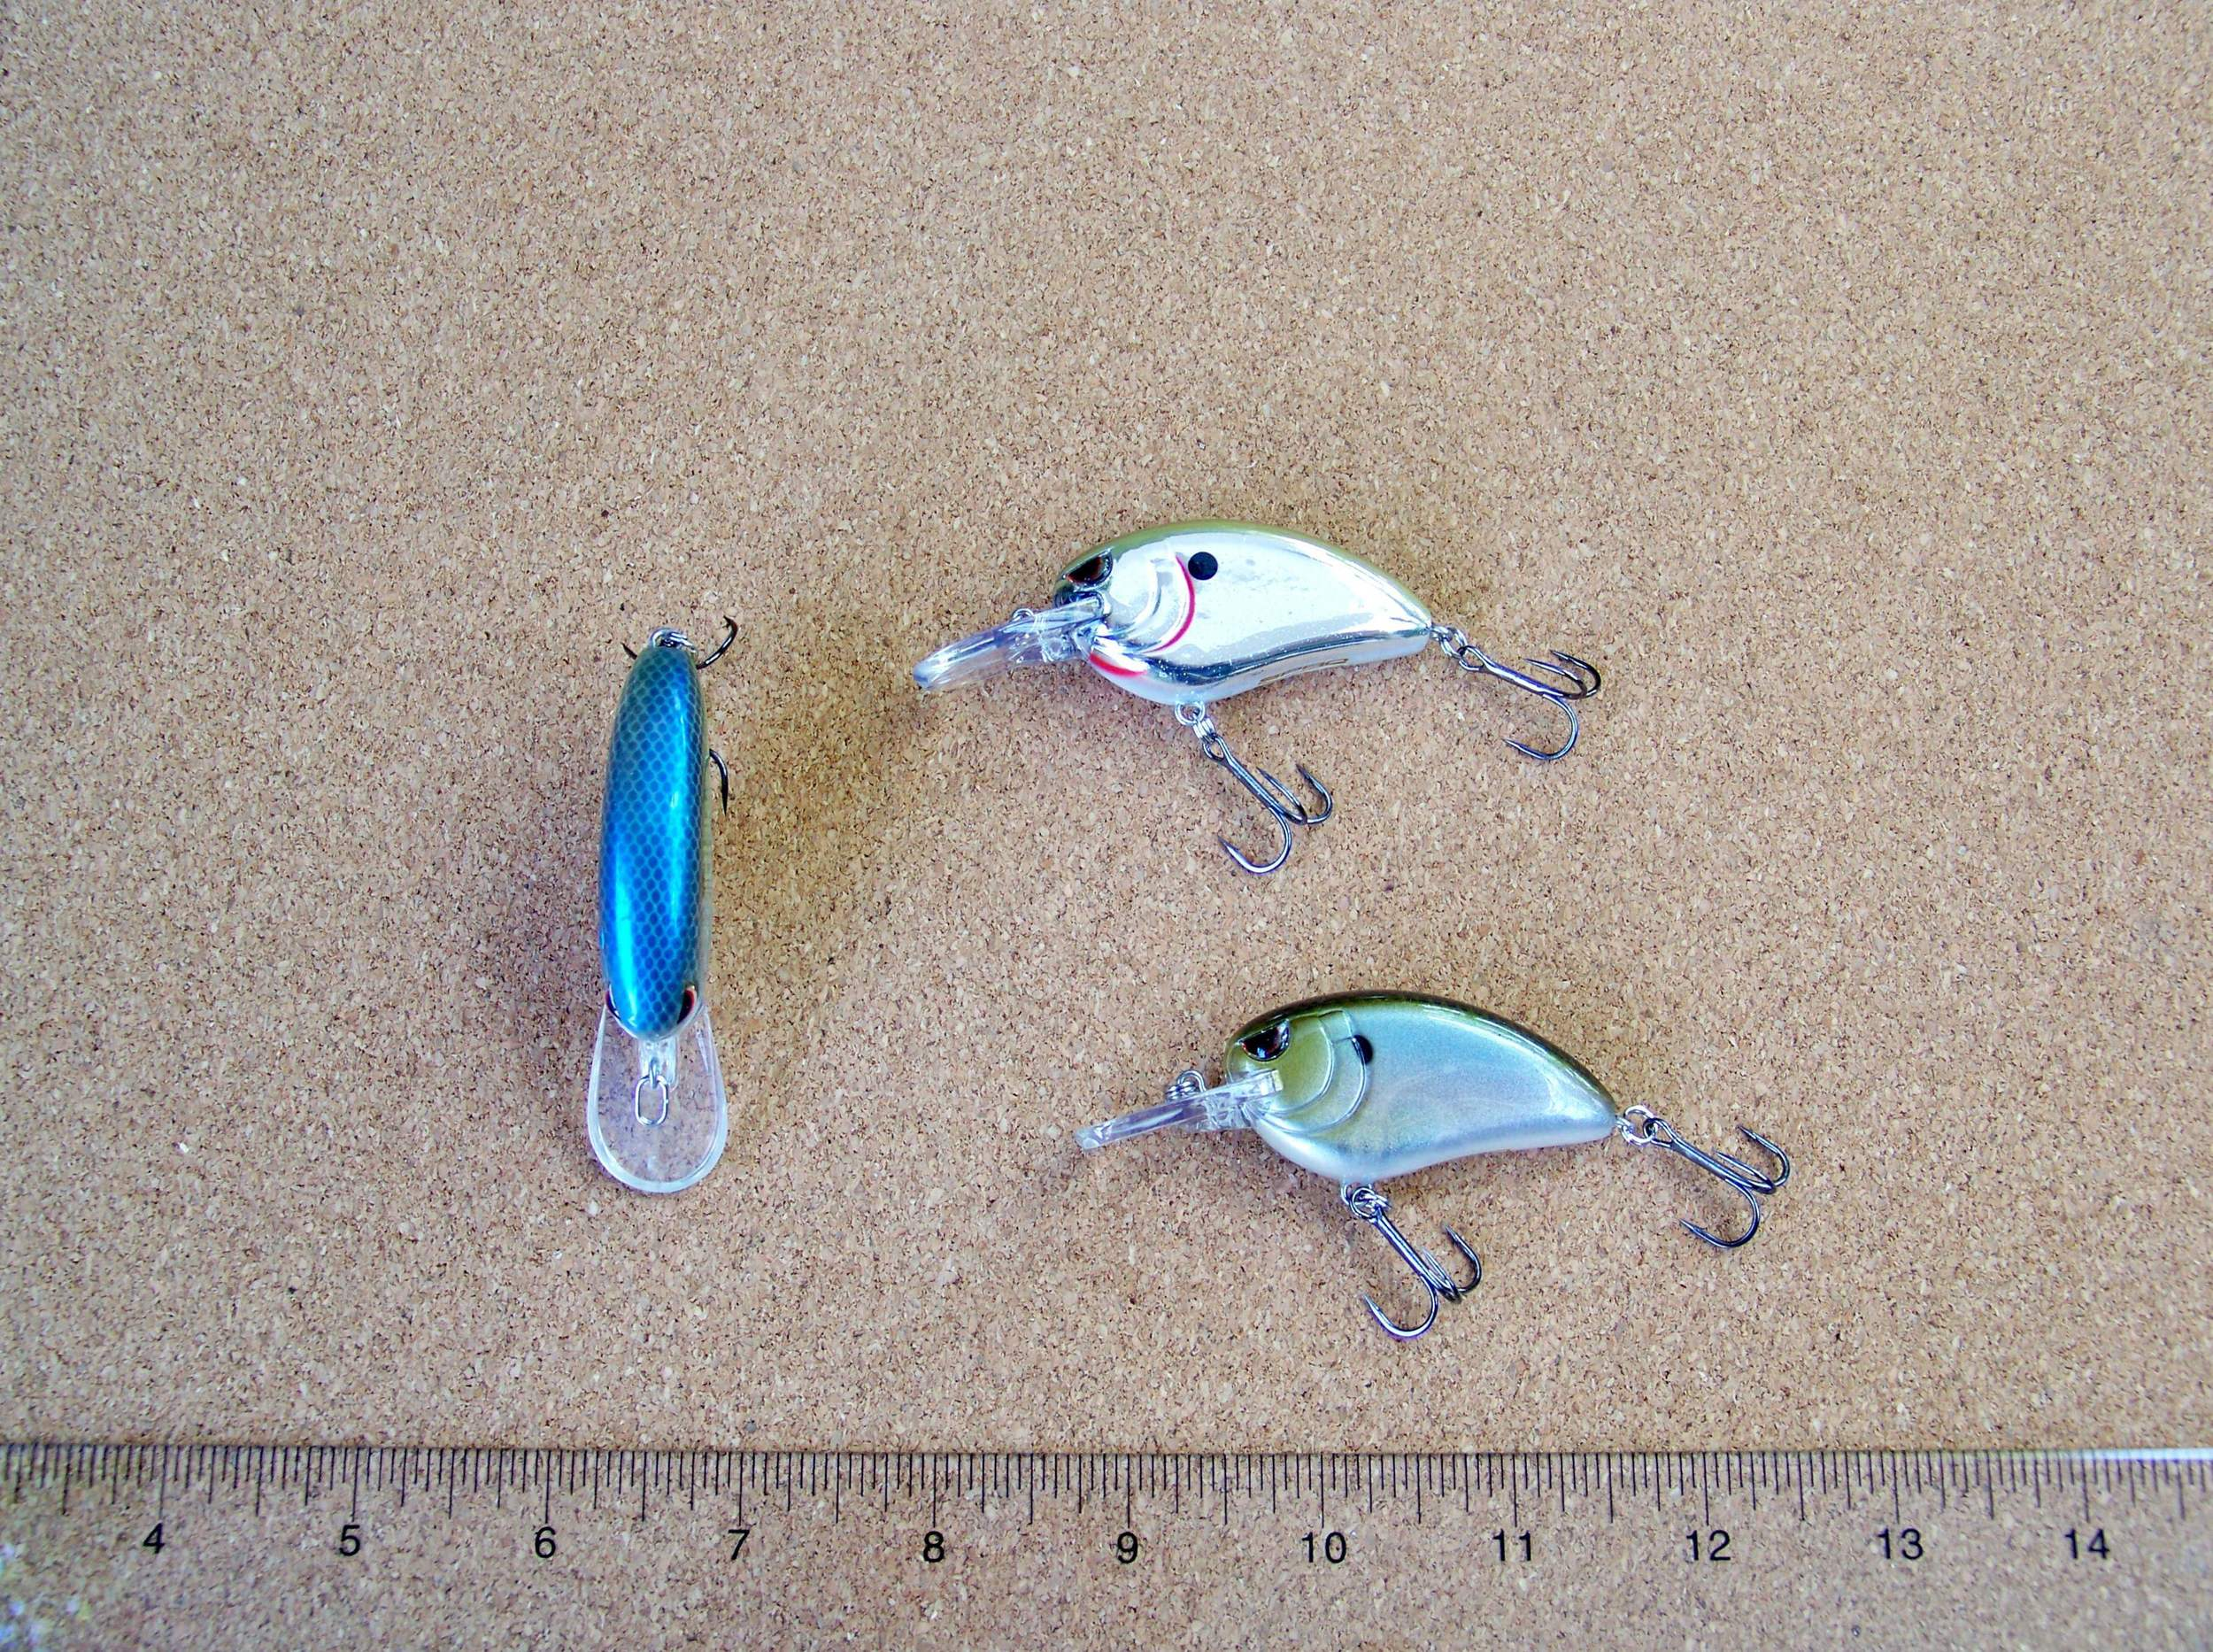 Little John MD 50 runs to 9 feet, left - Spooky Nasty / top right - Chrome Olive / bottom right - Spooky Shad, Crews will present this crank when he finds lay downs and brush located next to a drop off location with the top of the brush in the 7 foot deep range. The bait comes through brush well, allows you to deflect and with its slow rising float provides an effective pause in the strike zone!